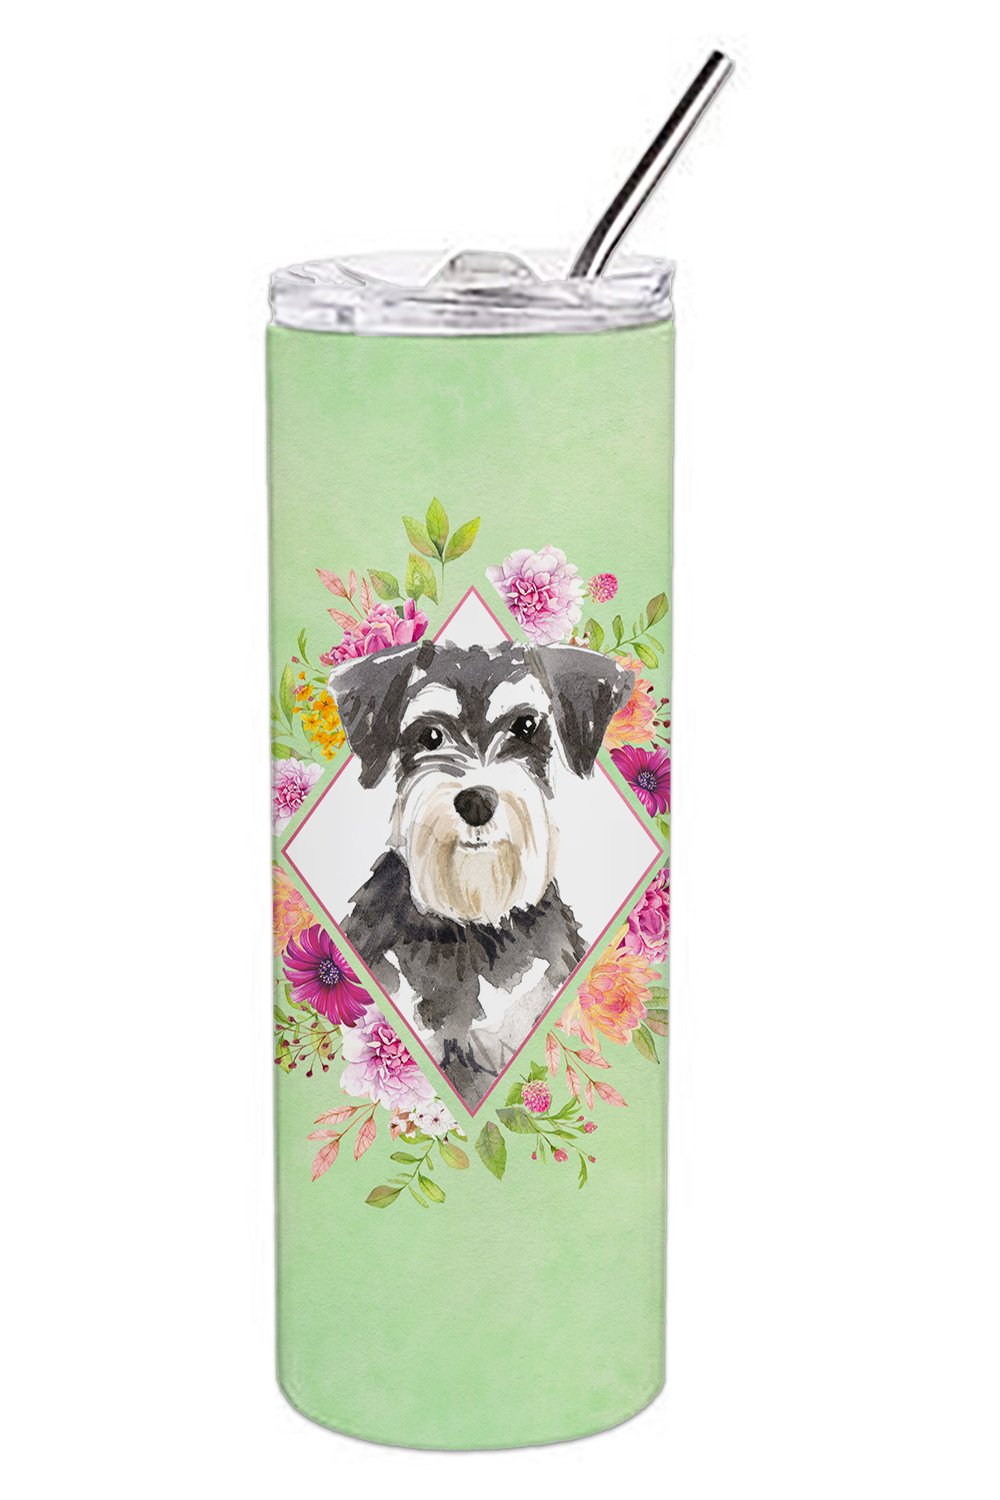 Schnauzer #2 Green Flowers Double Walled Stainless Steel 20 oz Skinny Tumbler CK4382TBL20 by Caroline's Treasures